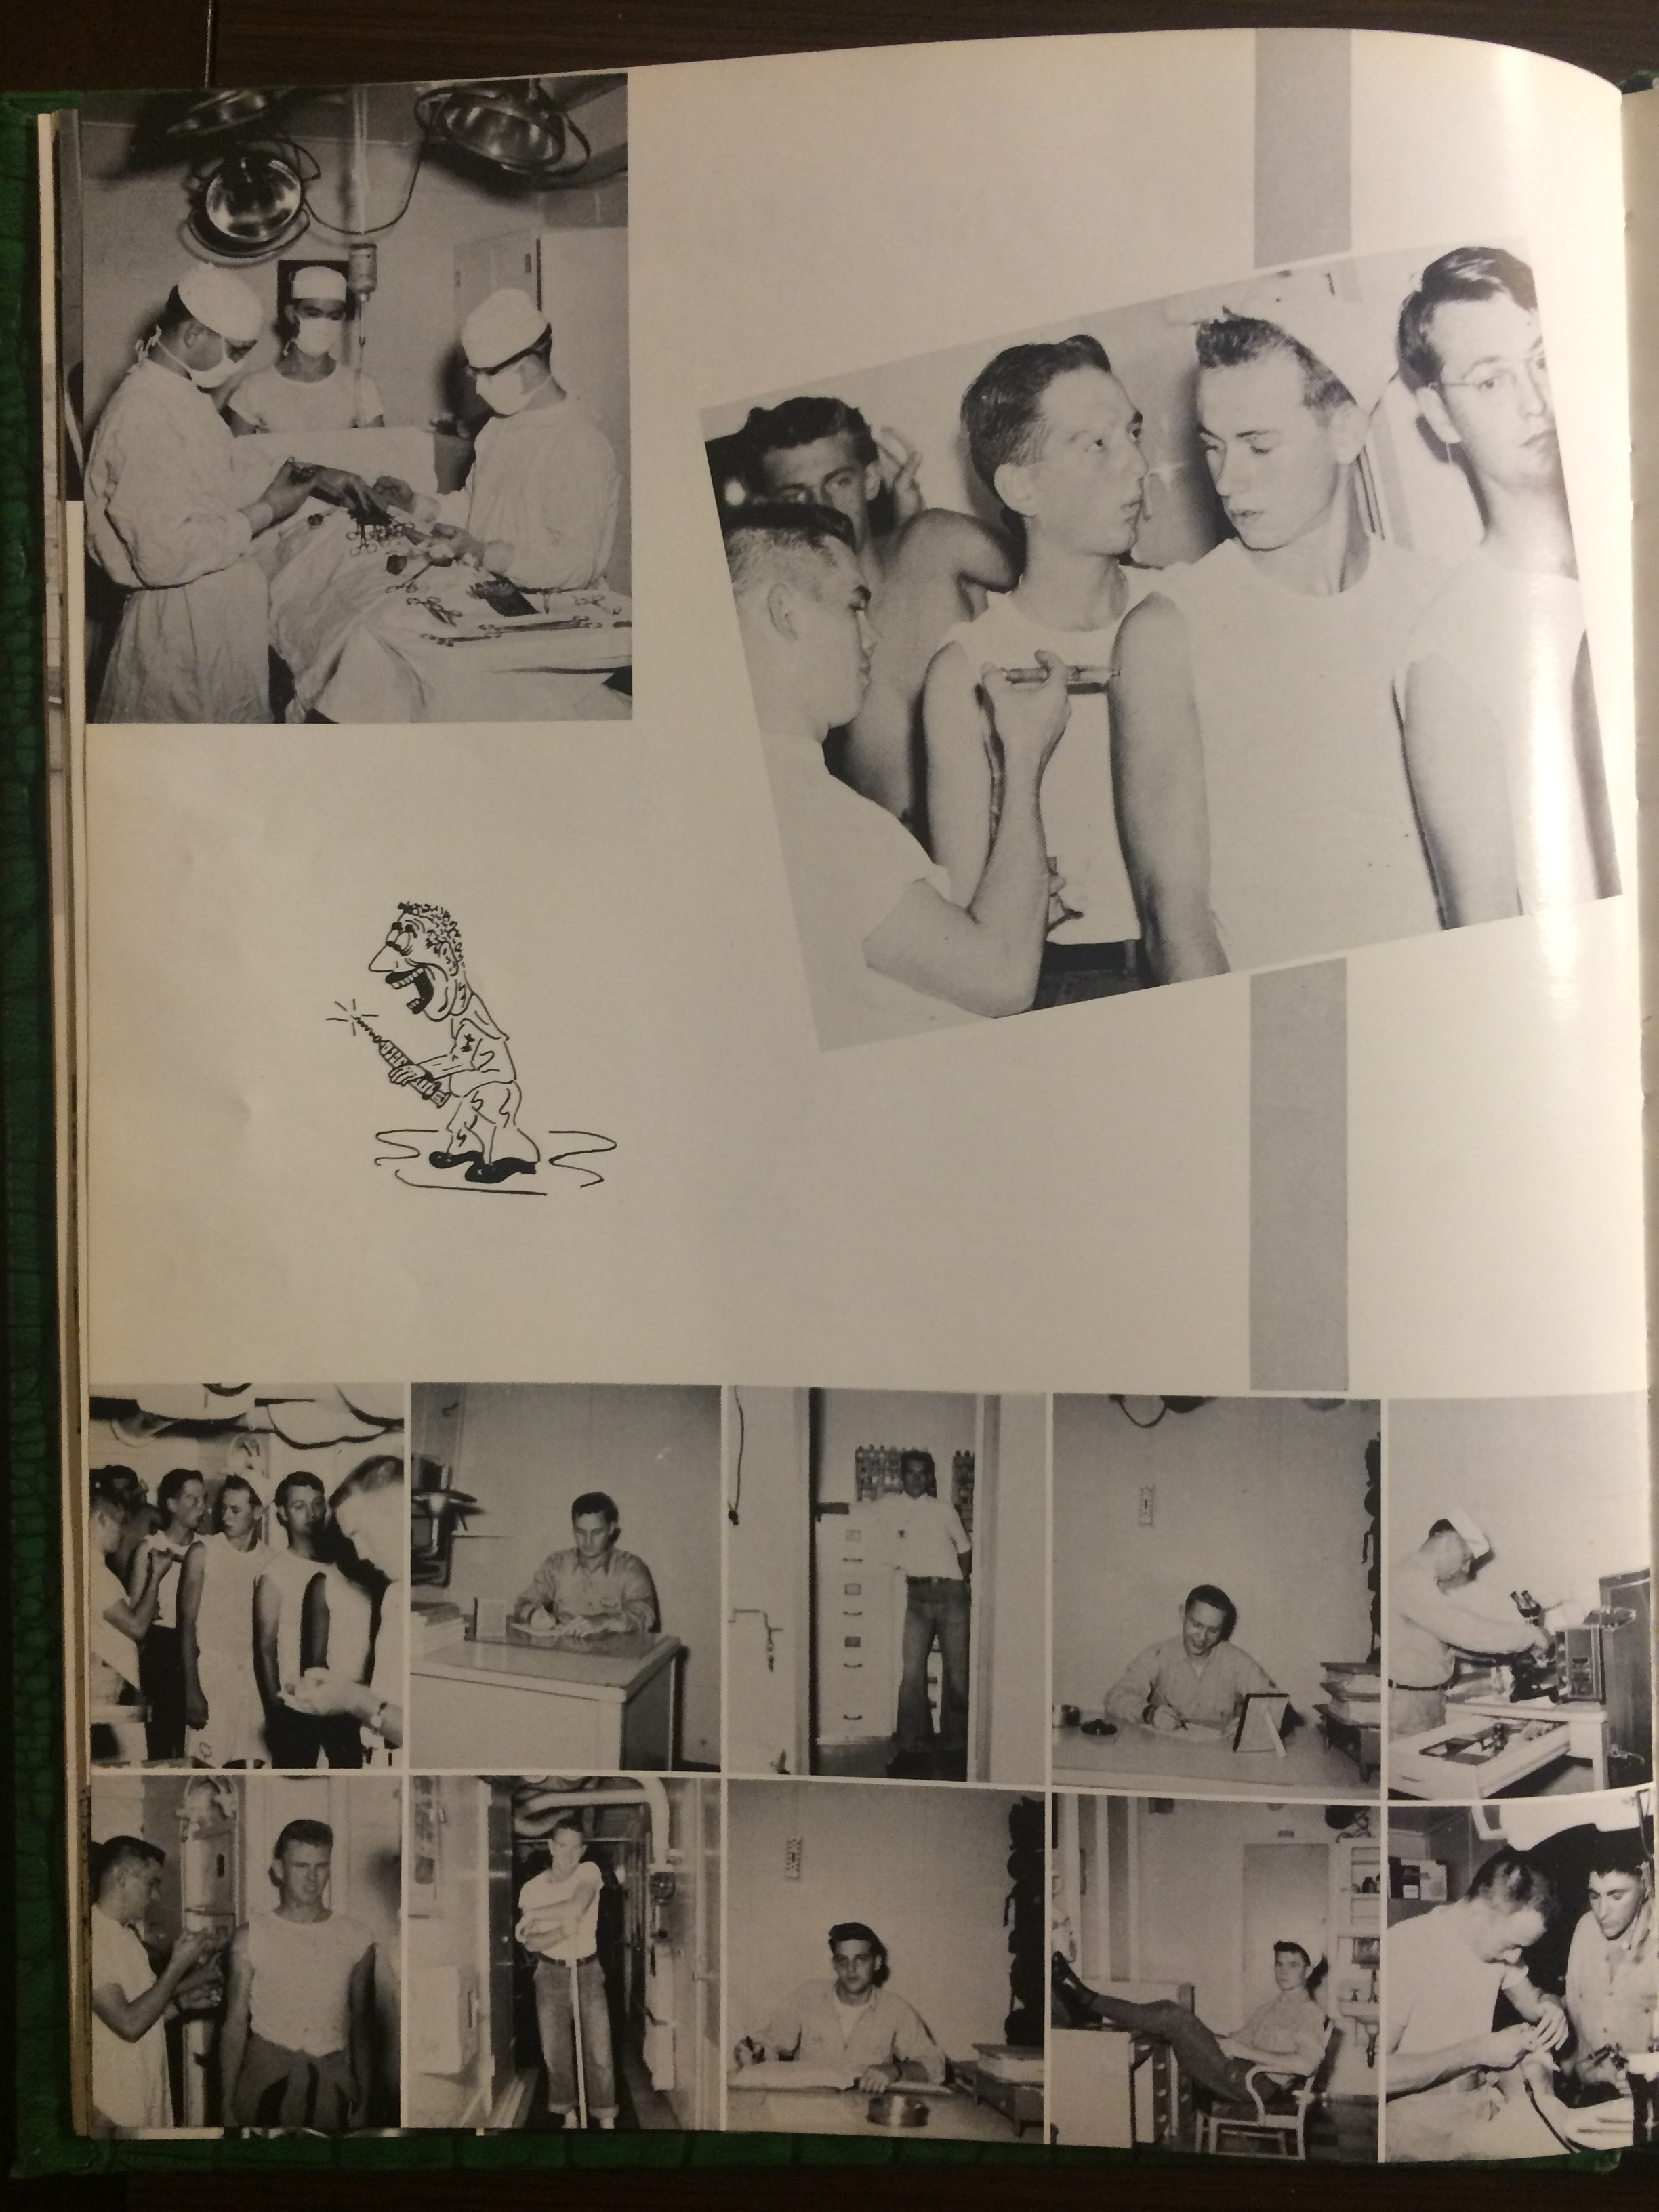 USS Calvert 1956 - Sixth Far East Cruise Book - 027